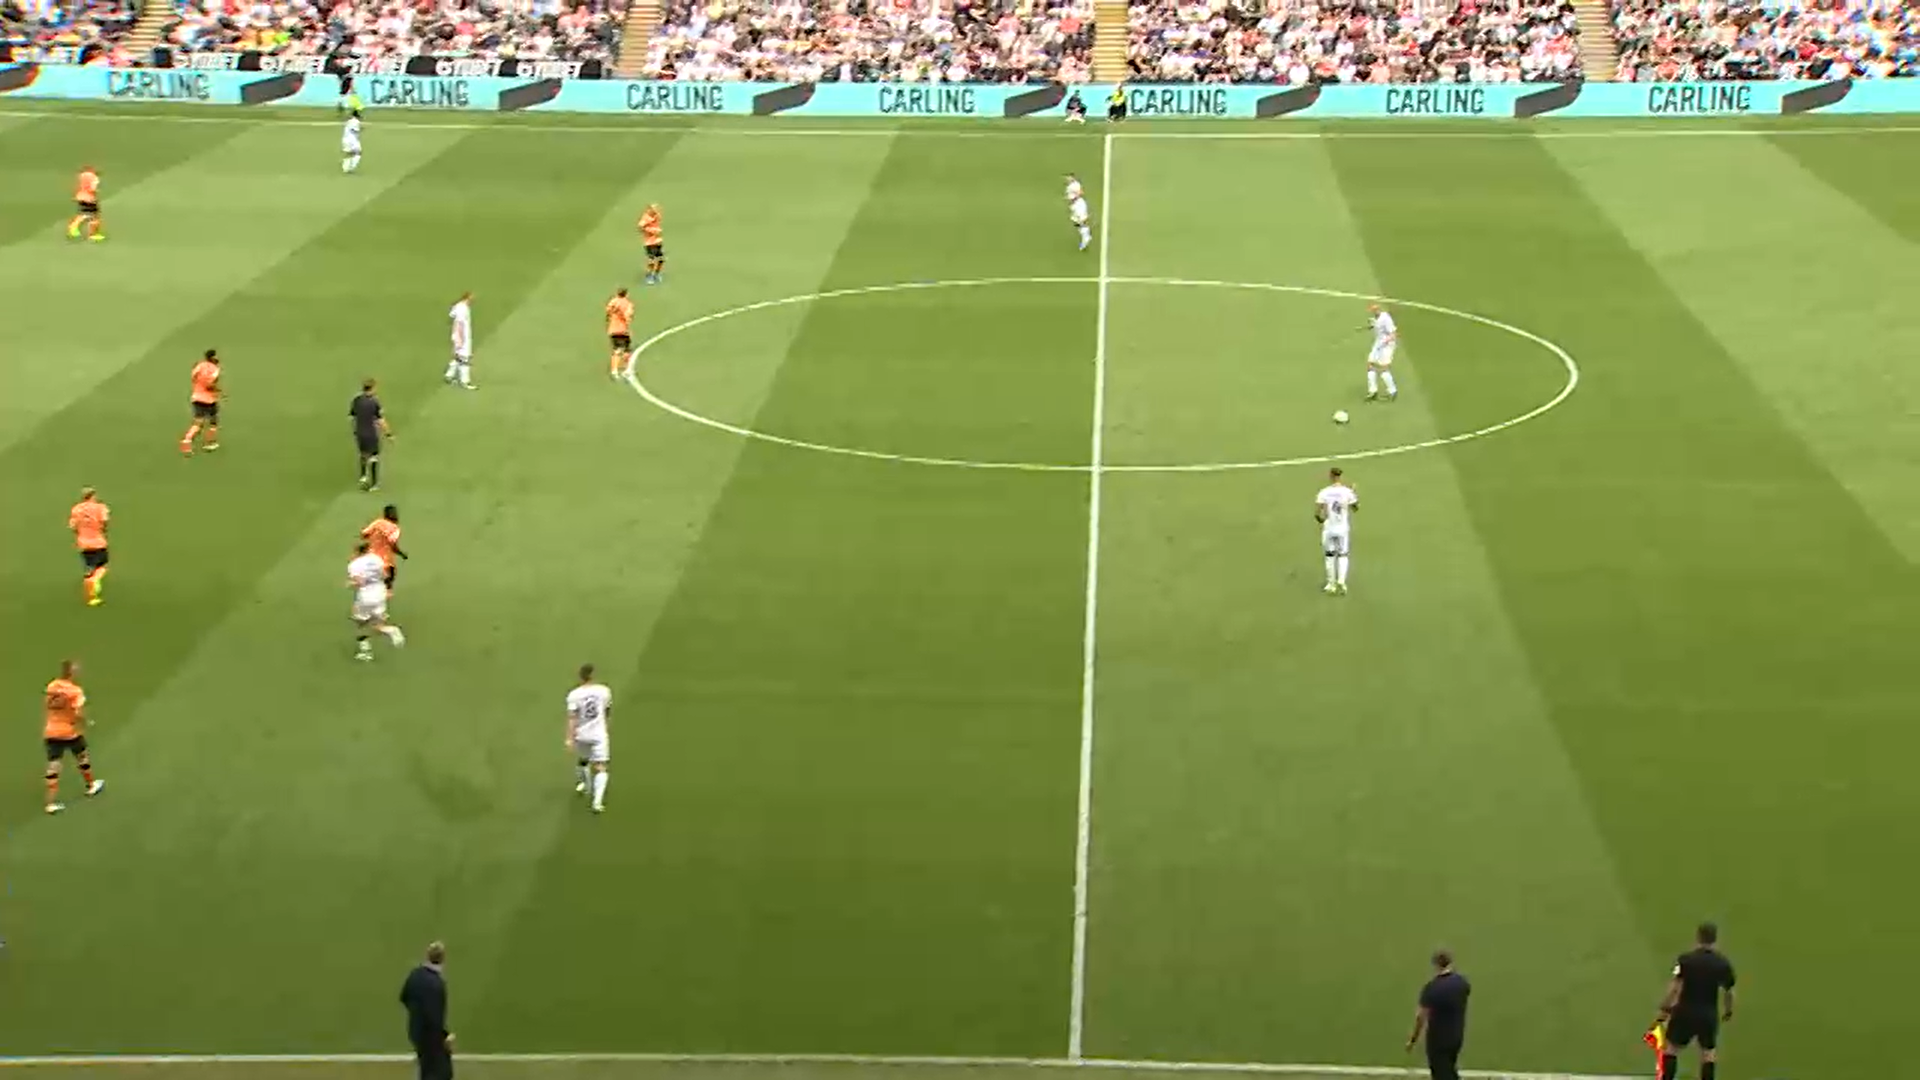 EFL Championship 2019/20: Swansea City vs Hull City - tactical analysis tactics